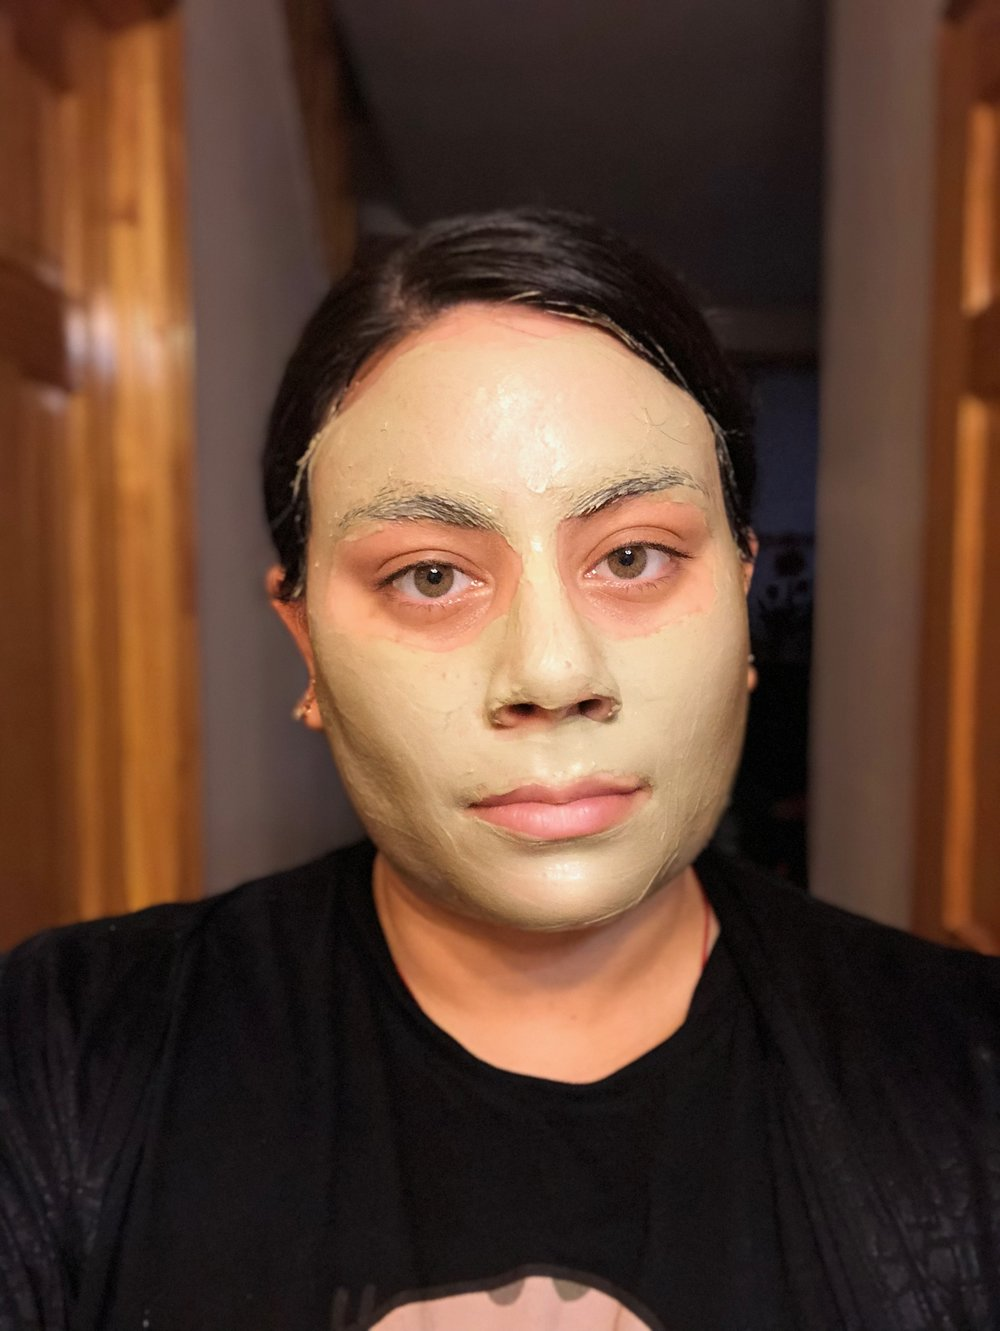 My face after a generous application of the clay mask.